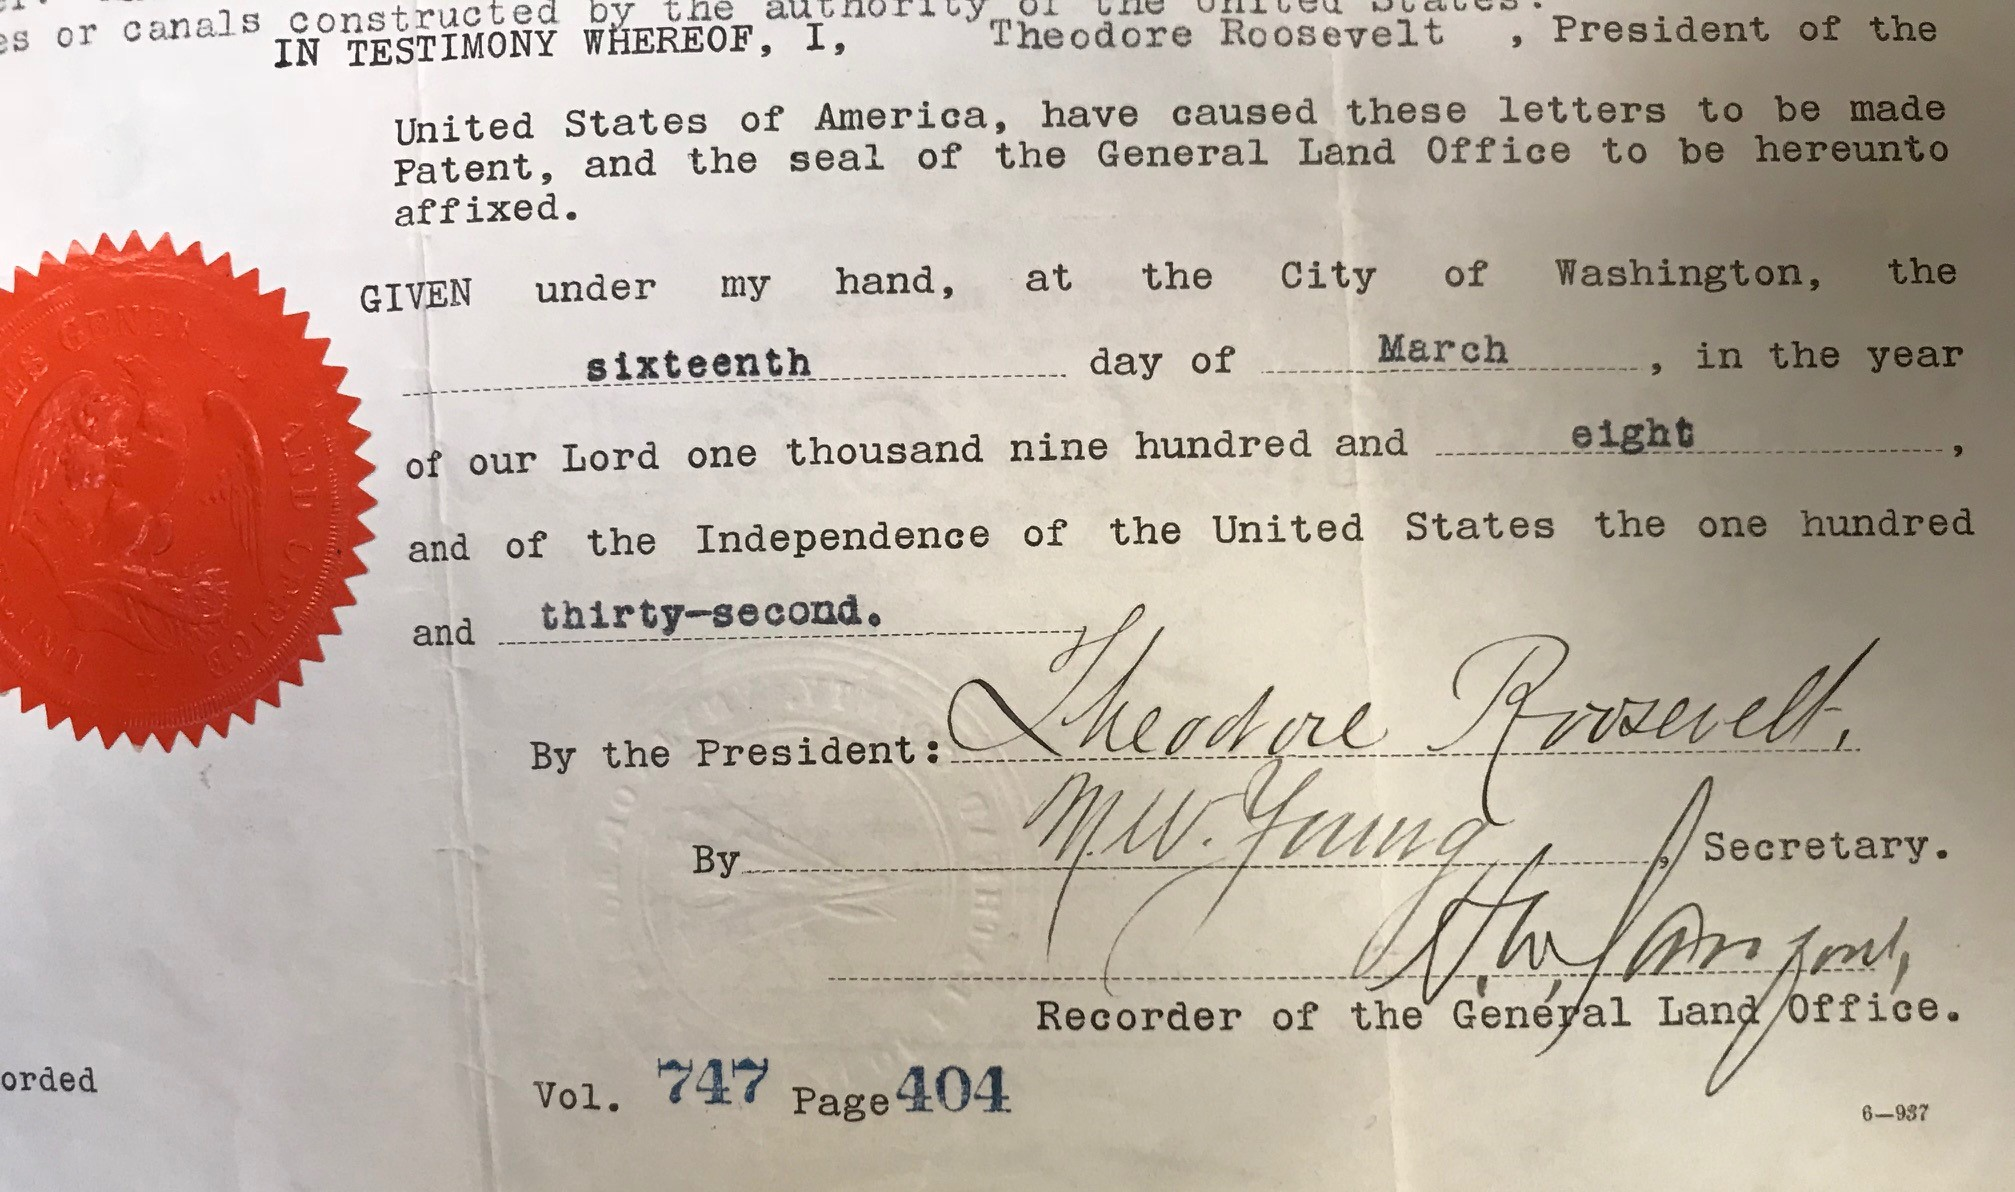 President Theodore Roosevelt signed a land patent providing land near the Grand Canyon Forest Reserve to the Santa Fe Pacific Railroad Company – a holding company for the ATSF – on March 16, 1908.